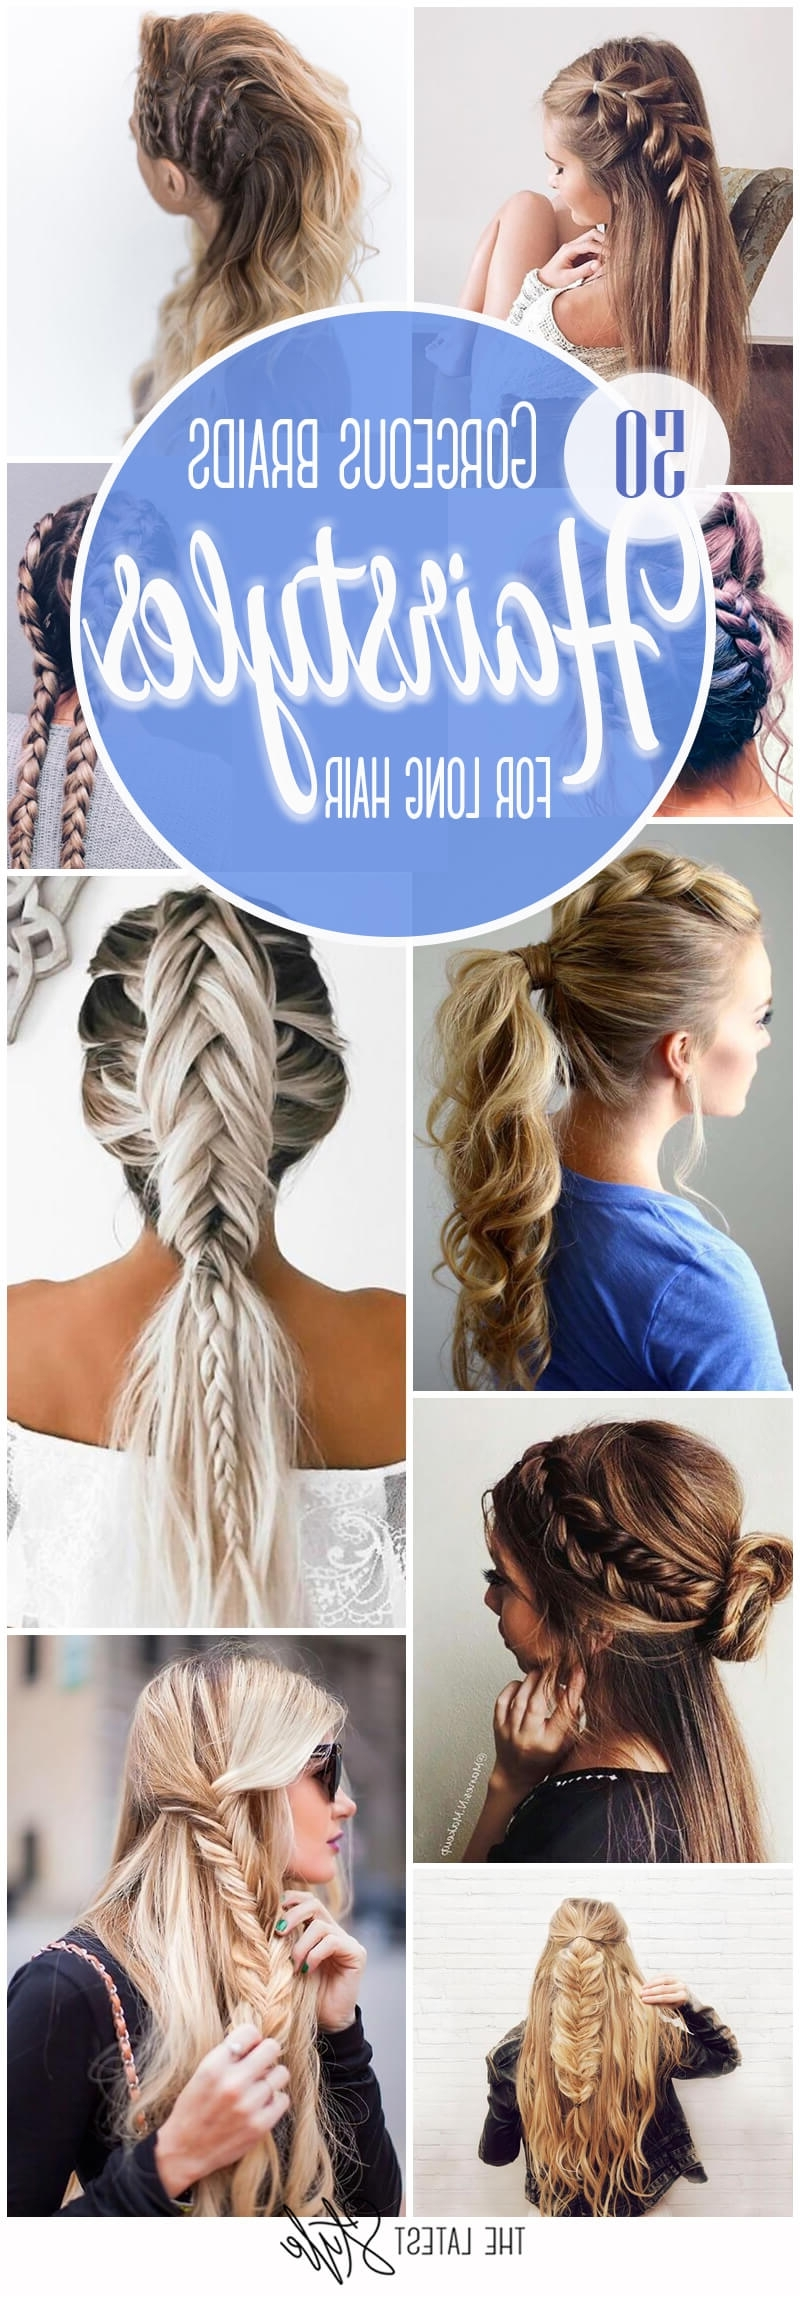 2017 Pair Of Braids With Wrapped Ponytail For 50 Gorgeous Braids Hairstyles For Long Hair (View 7 of 15)